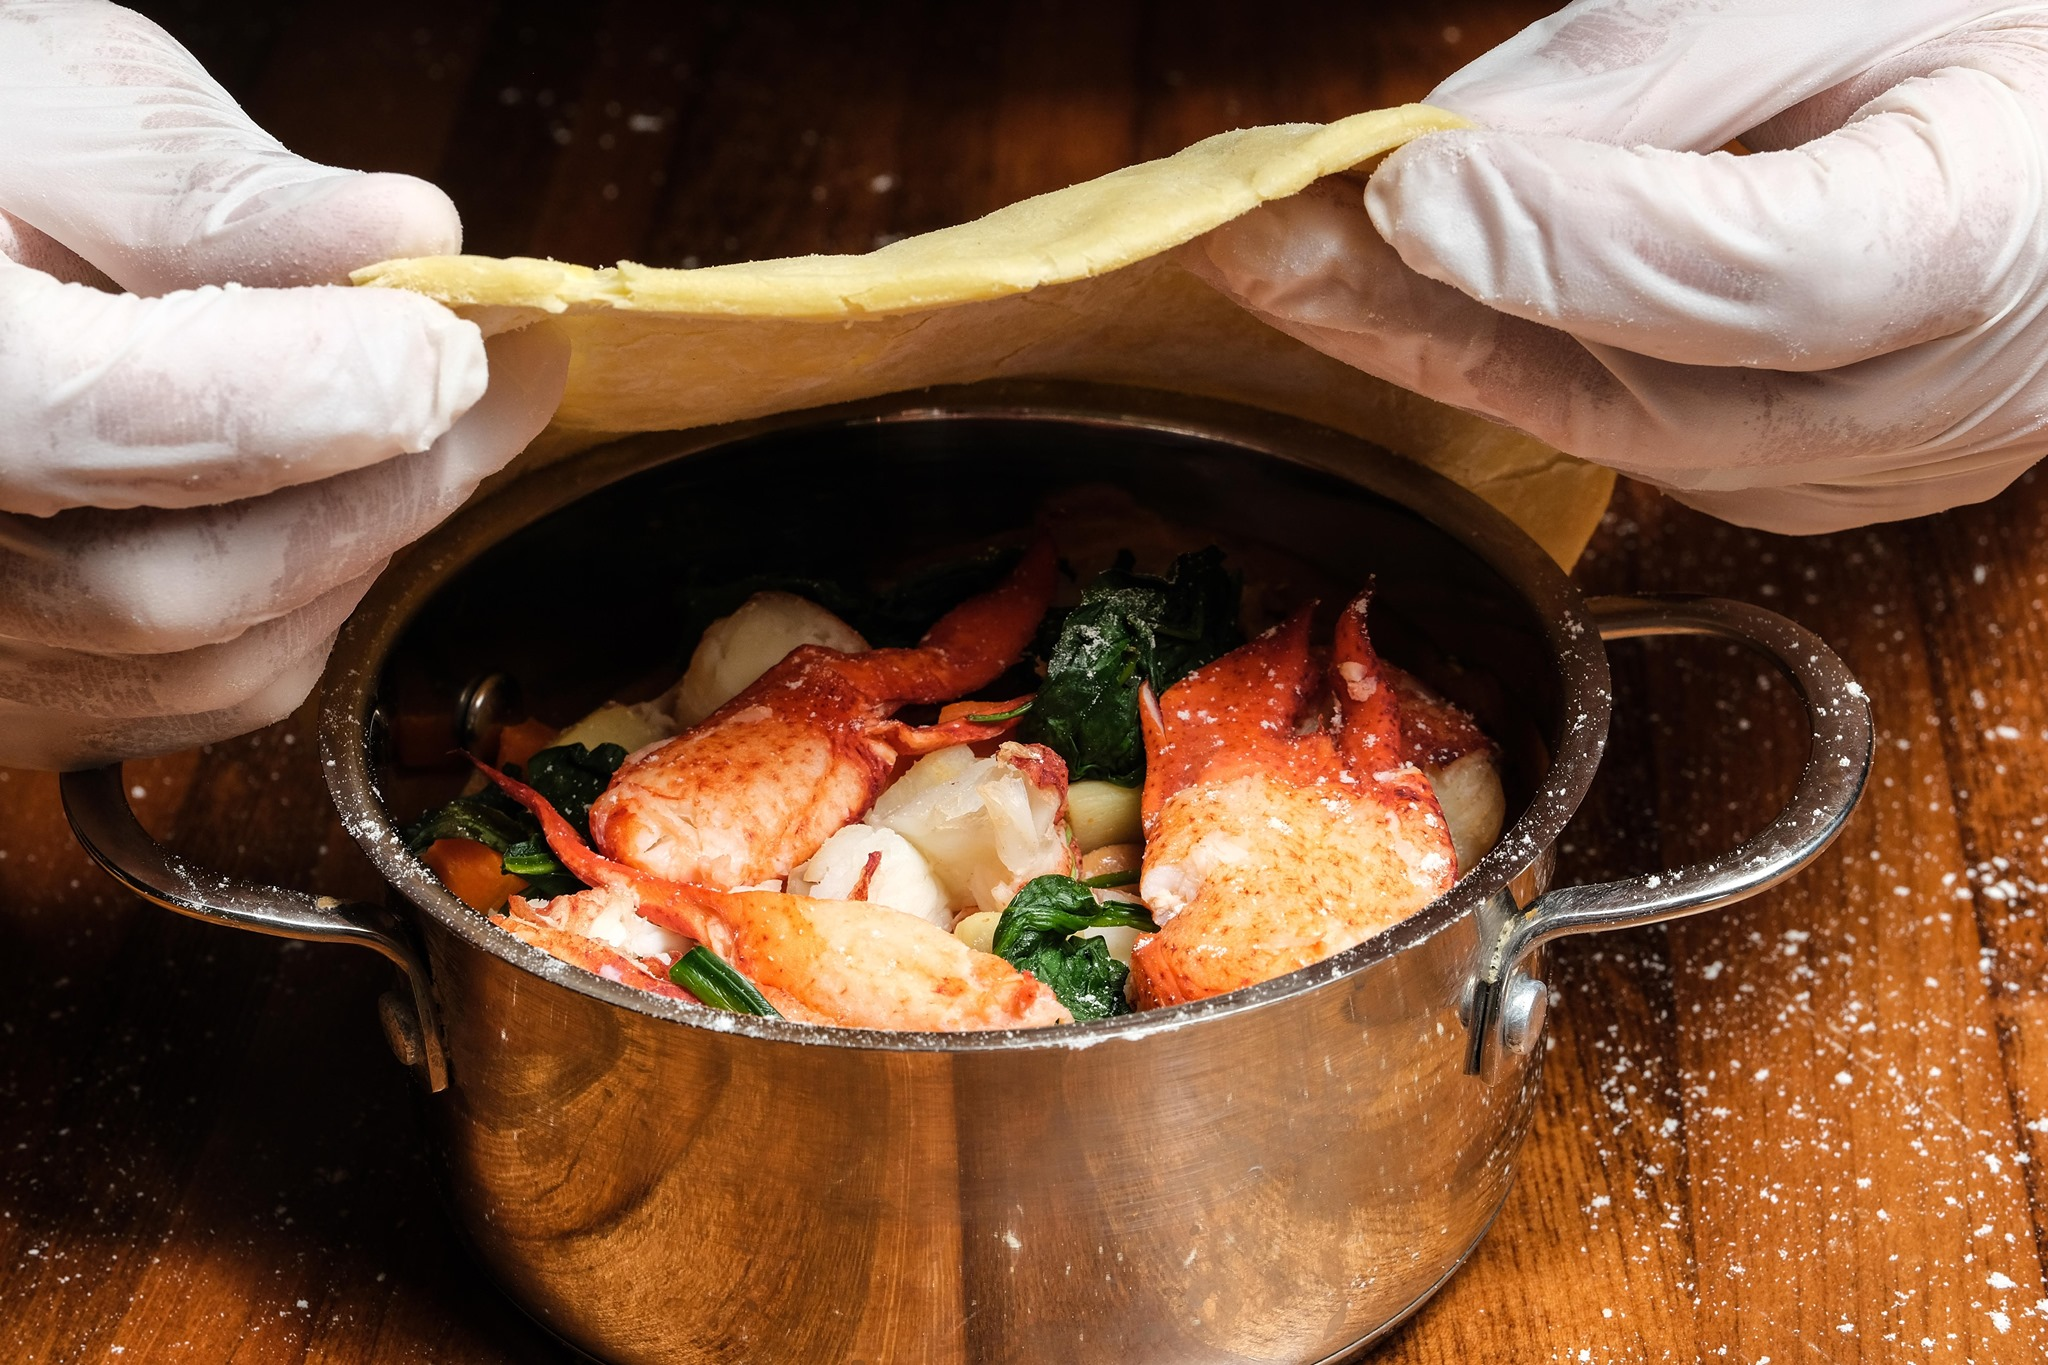 A lobster pot pie with two hands pulling dough over the top